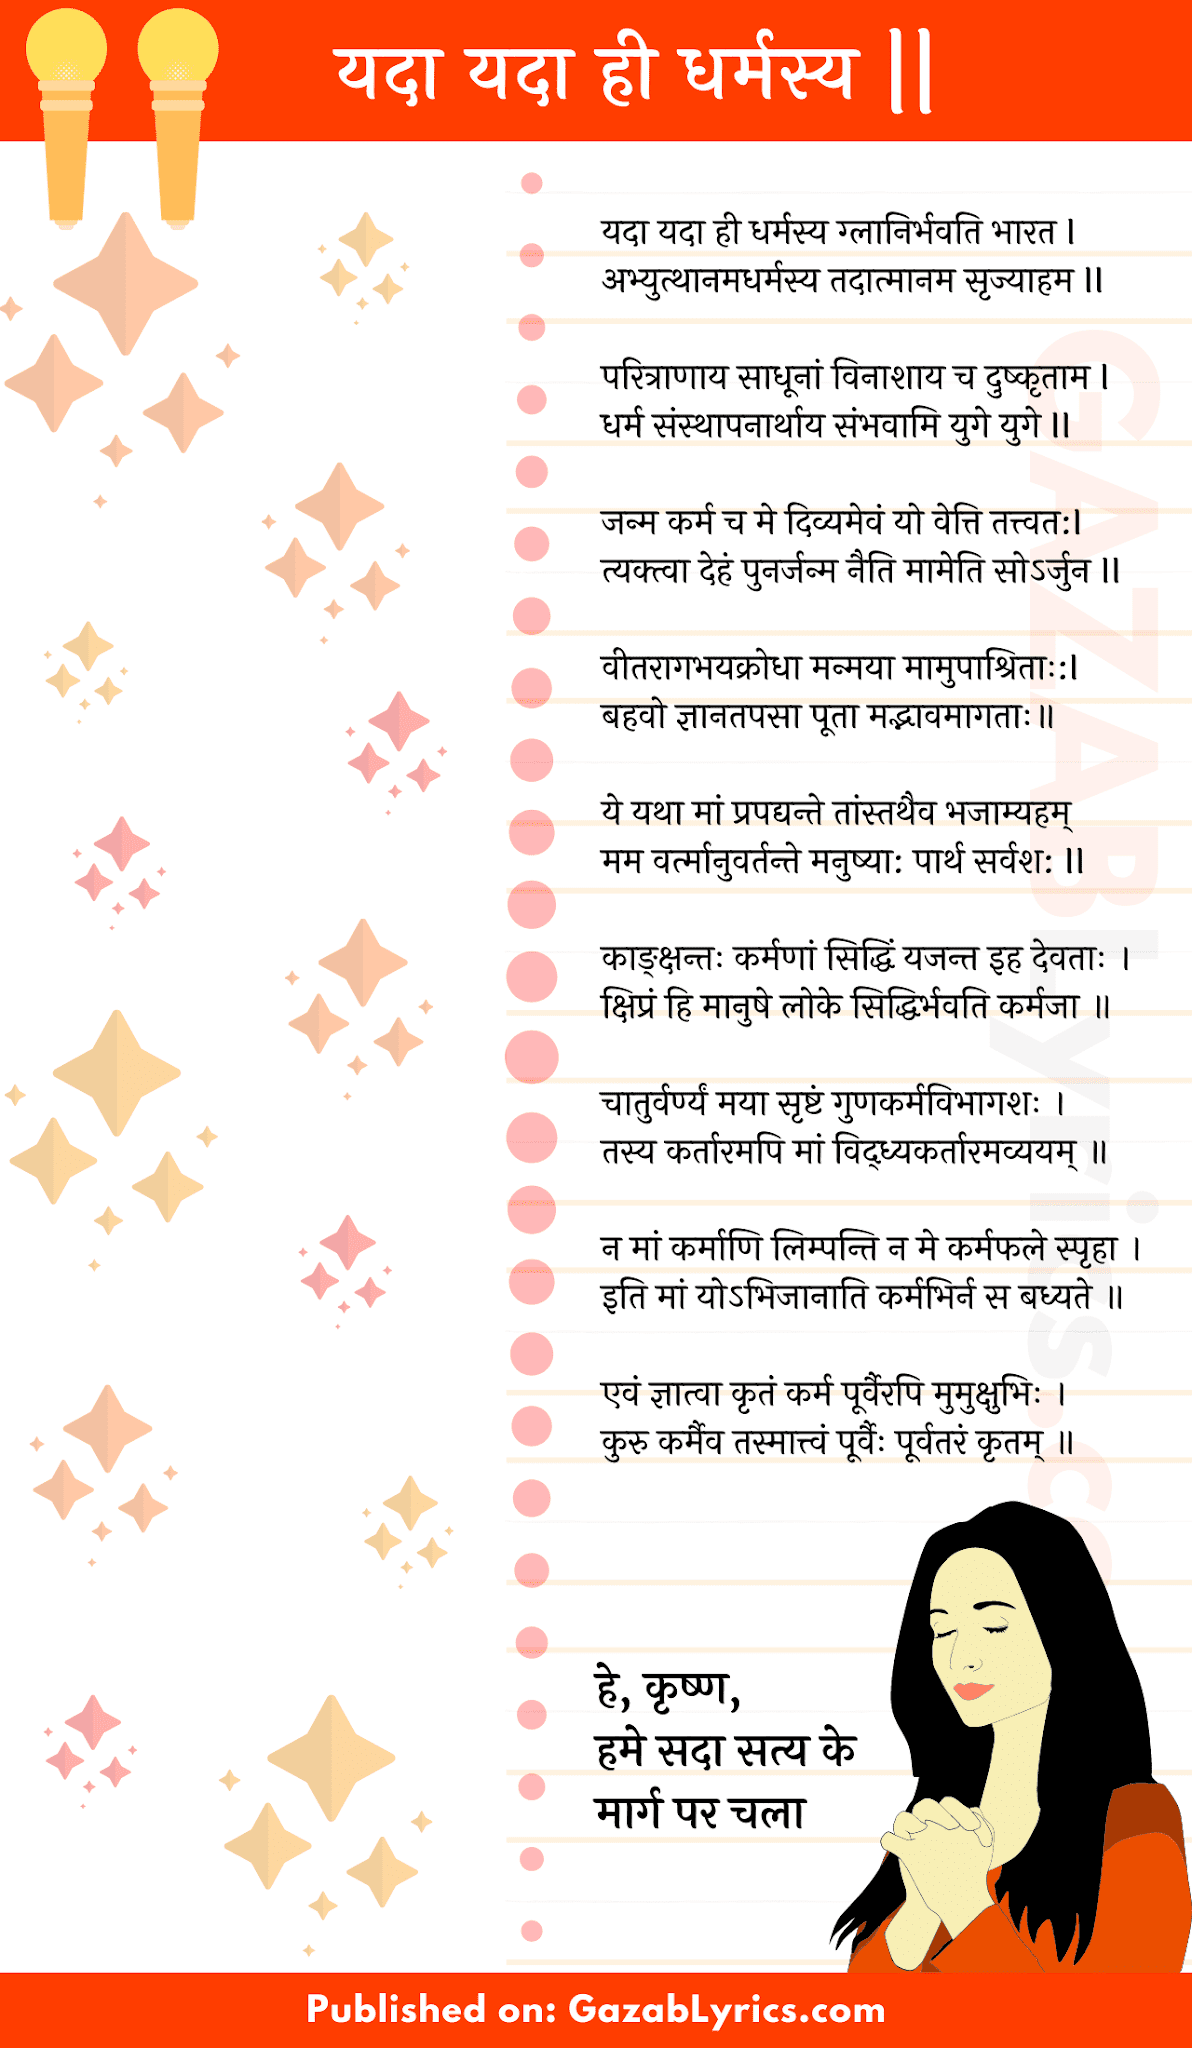 yada yada hi dharmasya sloka full lyrics in Hindi